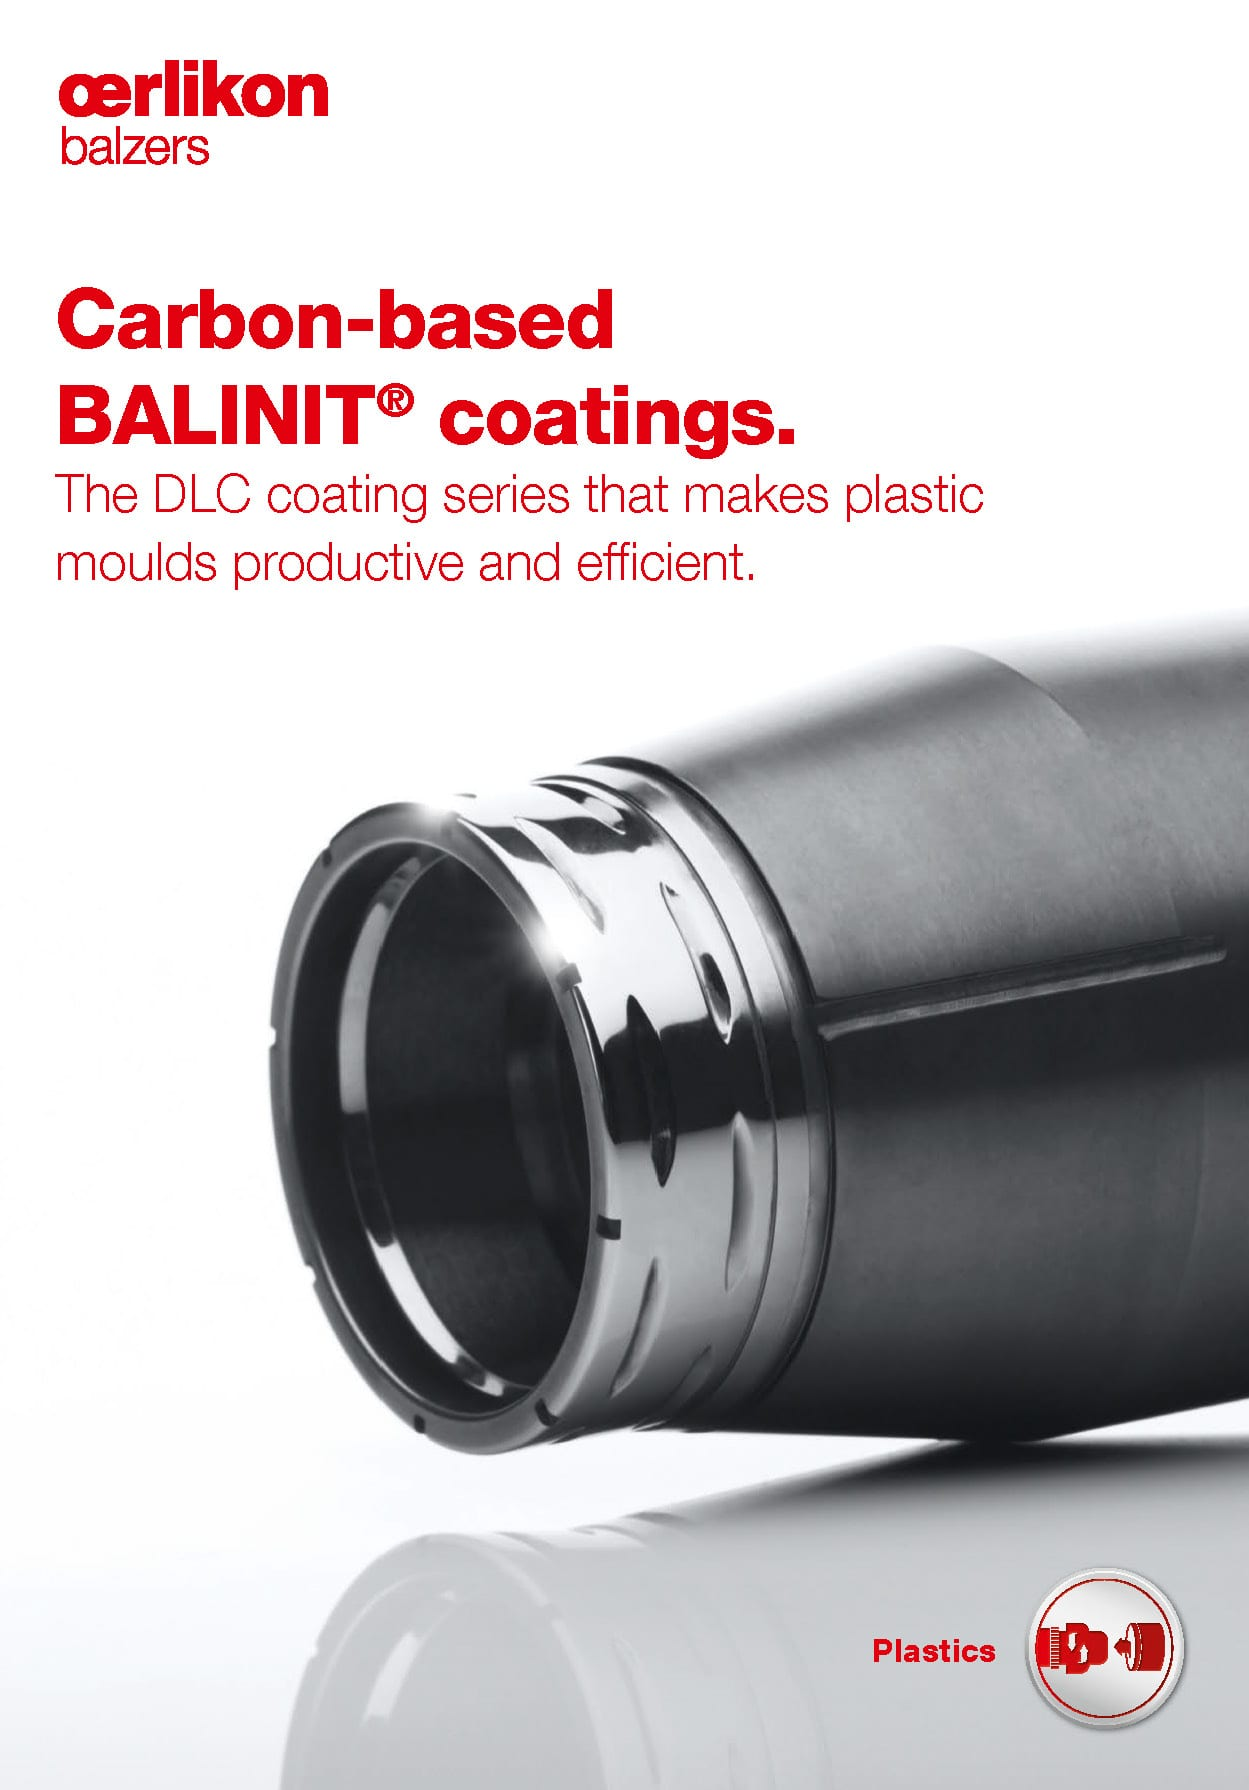 Carbon-based BALINIT® coatings